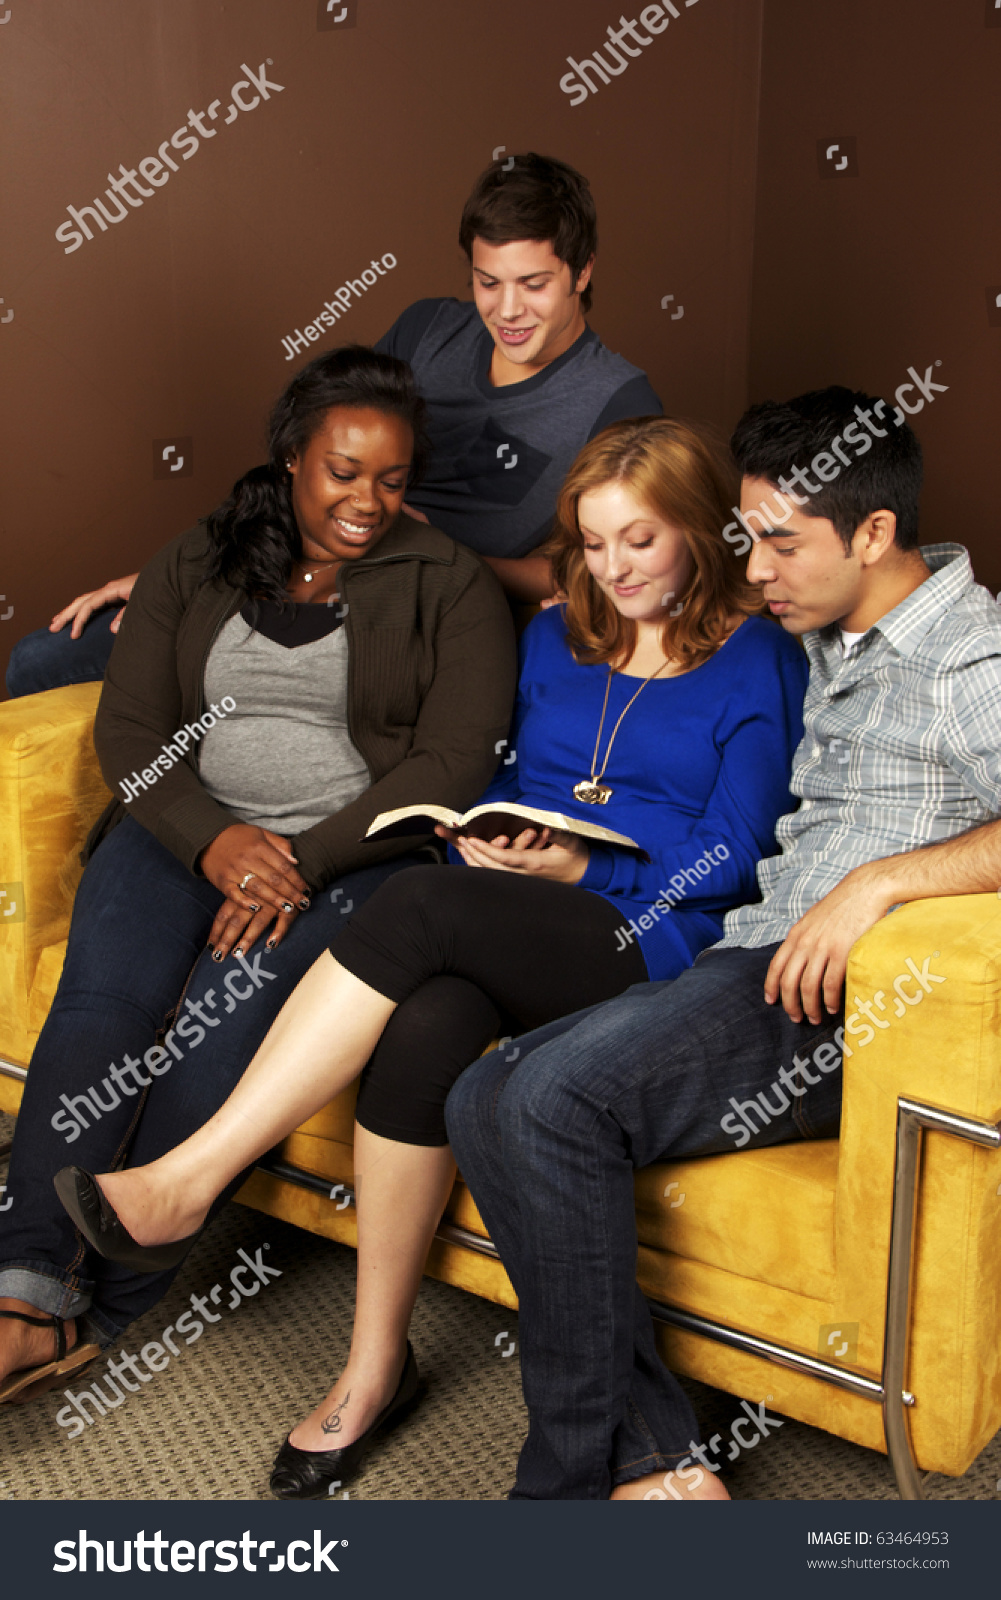 Group of diverse young adults